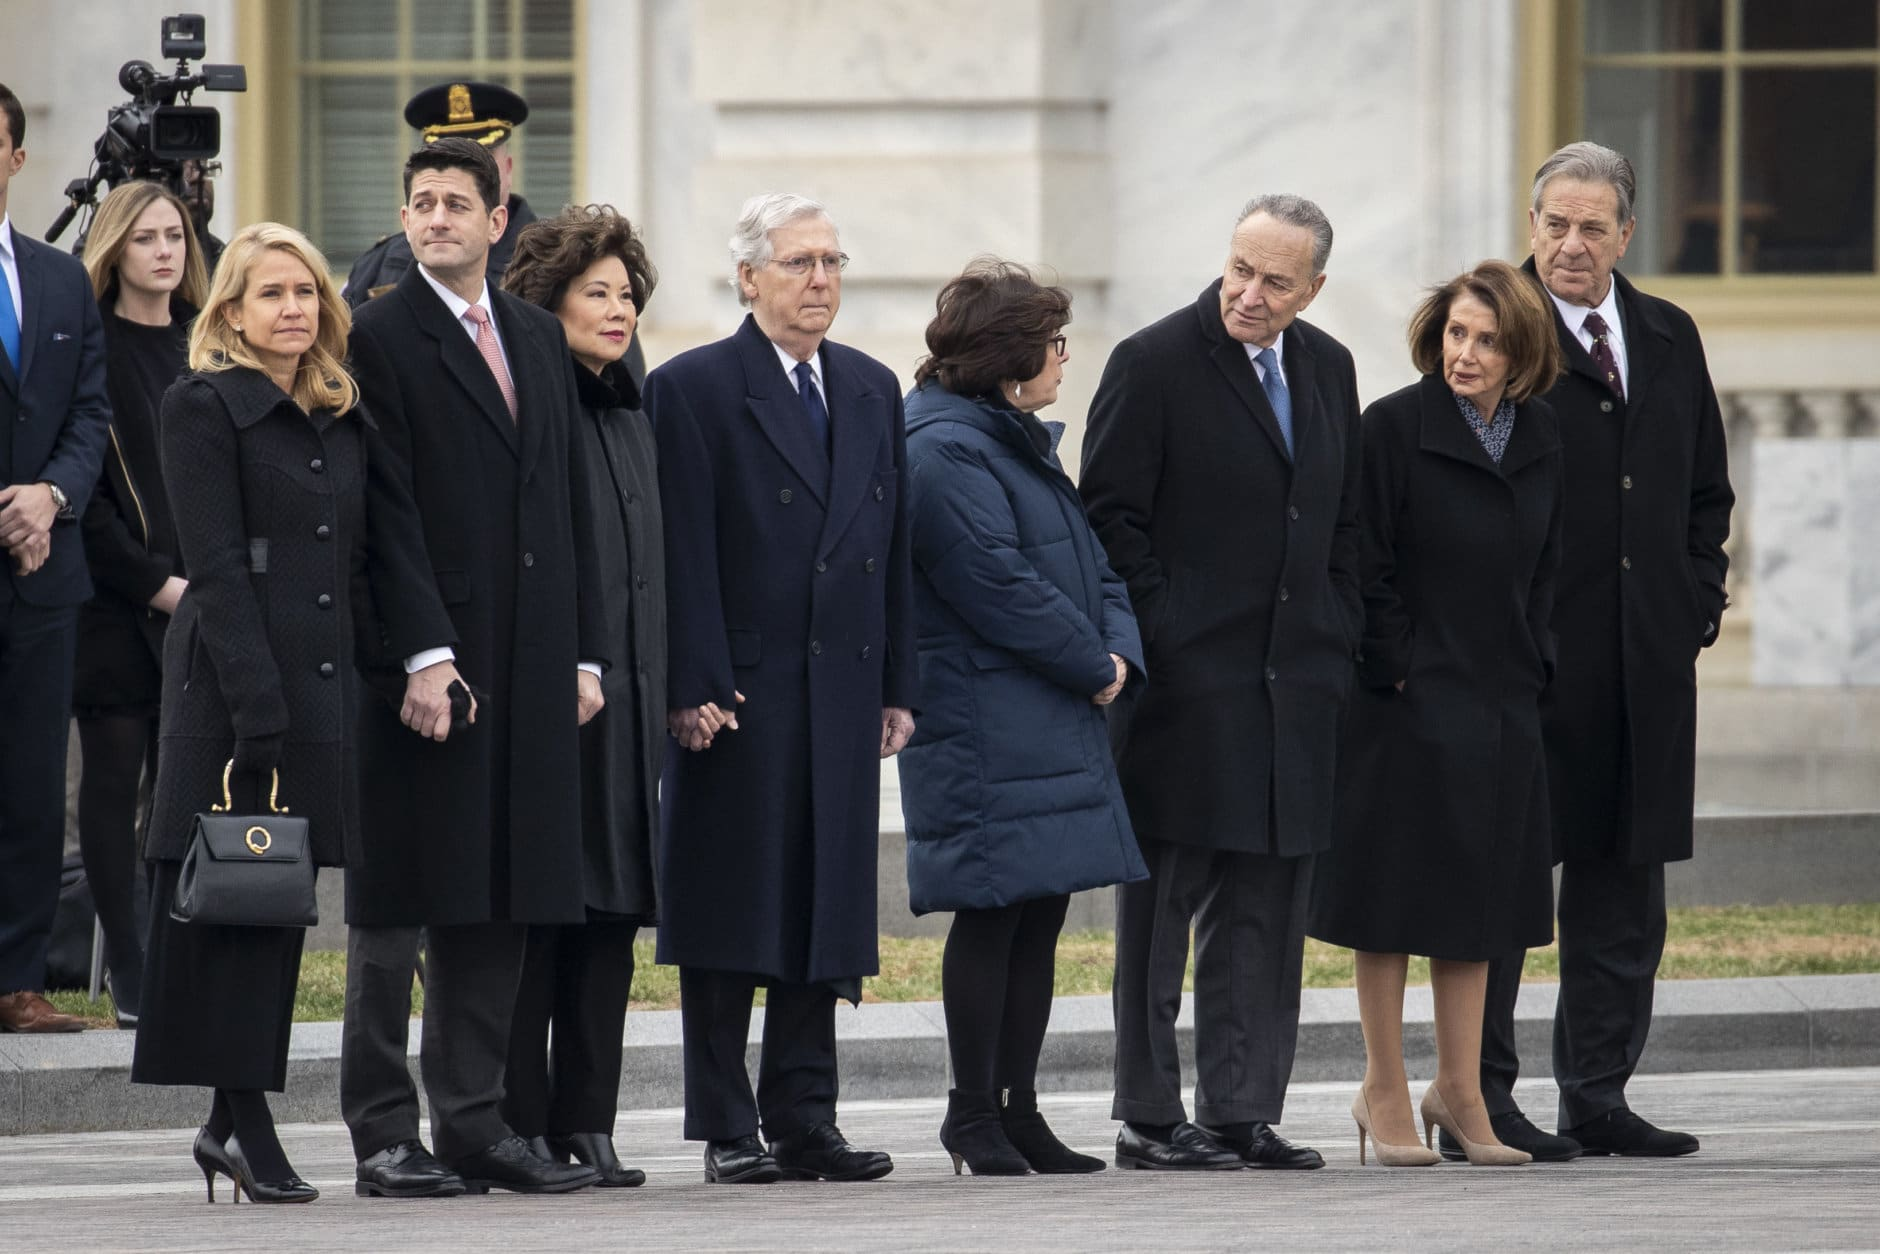 (L-R) Janna Ryan, Speaker of the House Paul Ryan, Transportation Secretary Elaine Chao, Senate Majority Leader Mitch McConnell, Iris Weinshall, Senate Minority Leader Chuck Schumer, House Minority Leader Nancy Pelosi and Paul Pelosi await the departure of the flag-draped casket of the late former President George H.W. Bush at the U.S. Capitol, December 5, 2018 in Washington, DC. A WWII combat veteran, Bush served as a member of Congress from Texas, ambassador to the United Nations, director of the CIA, vice president and 41st president of the United States. (Photo by Drew Angerer/Getty Images)